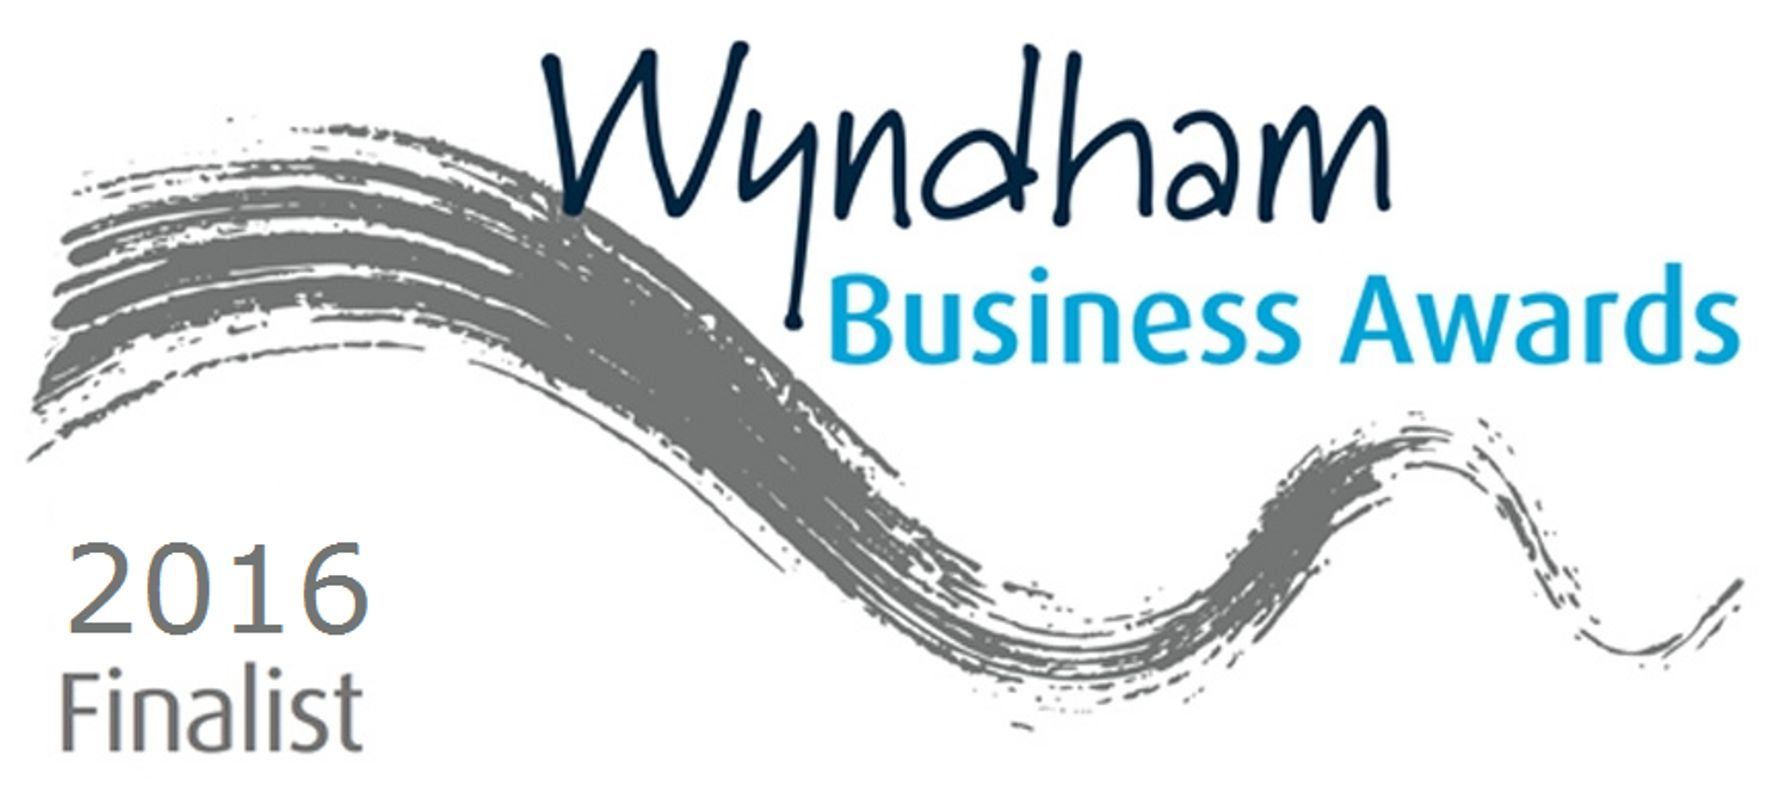 Wyndham Business Awards Logo 2016